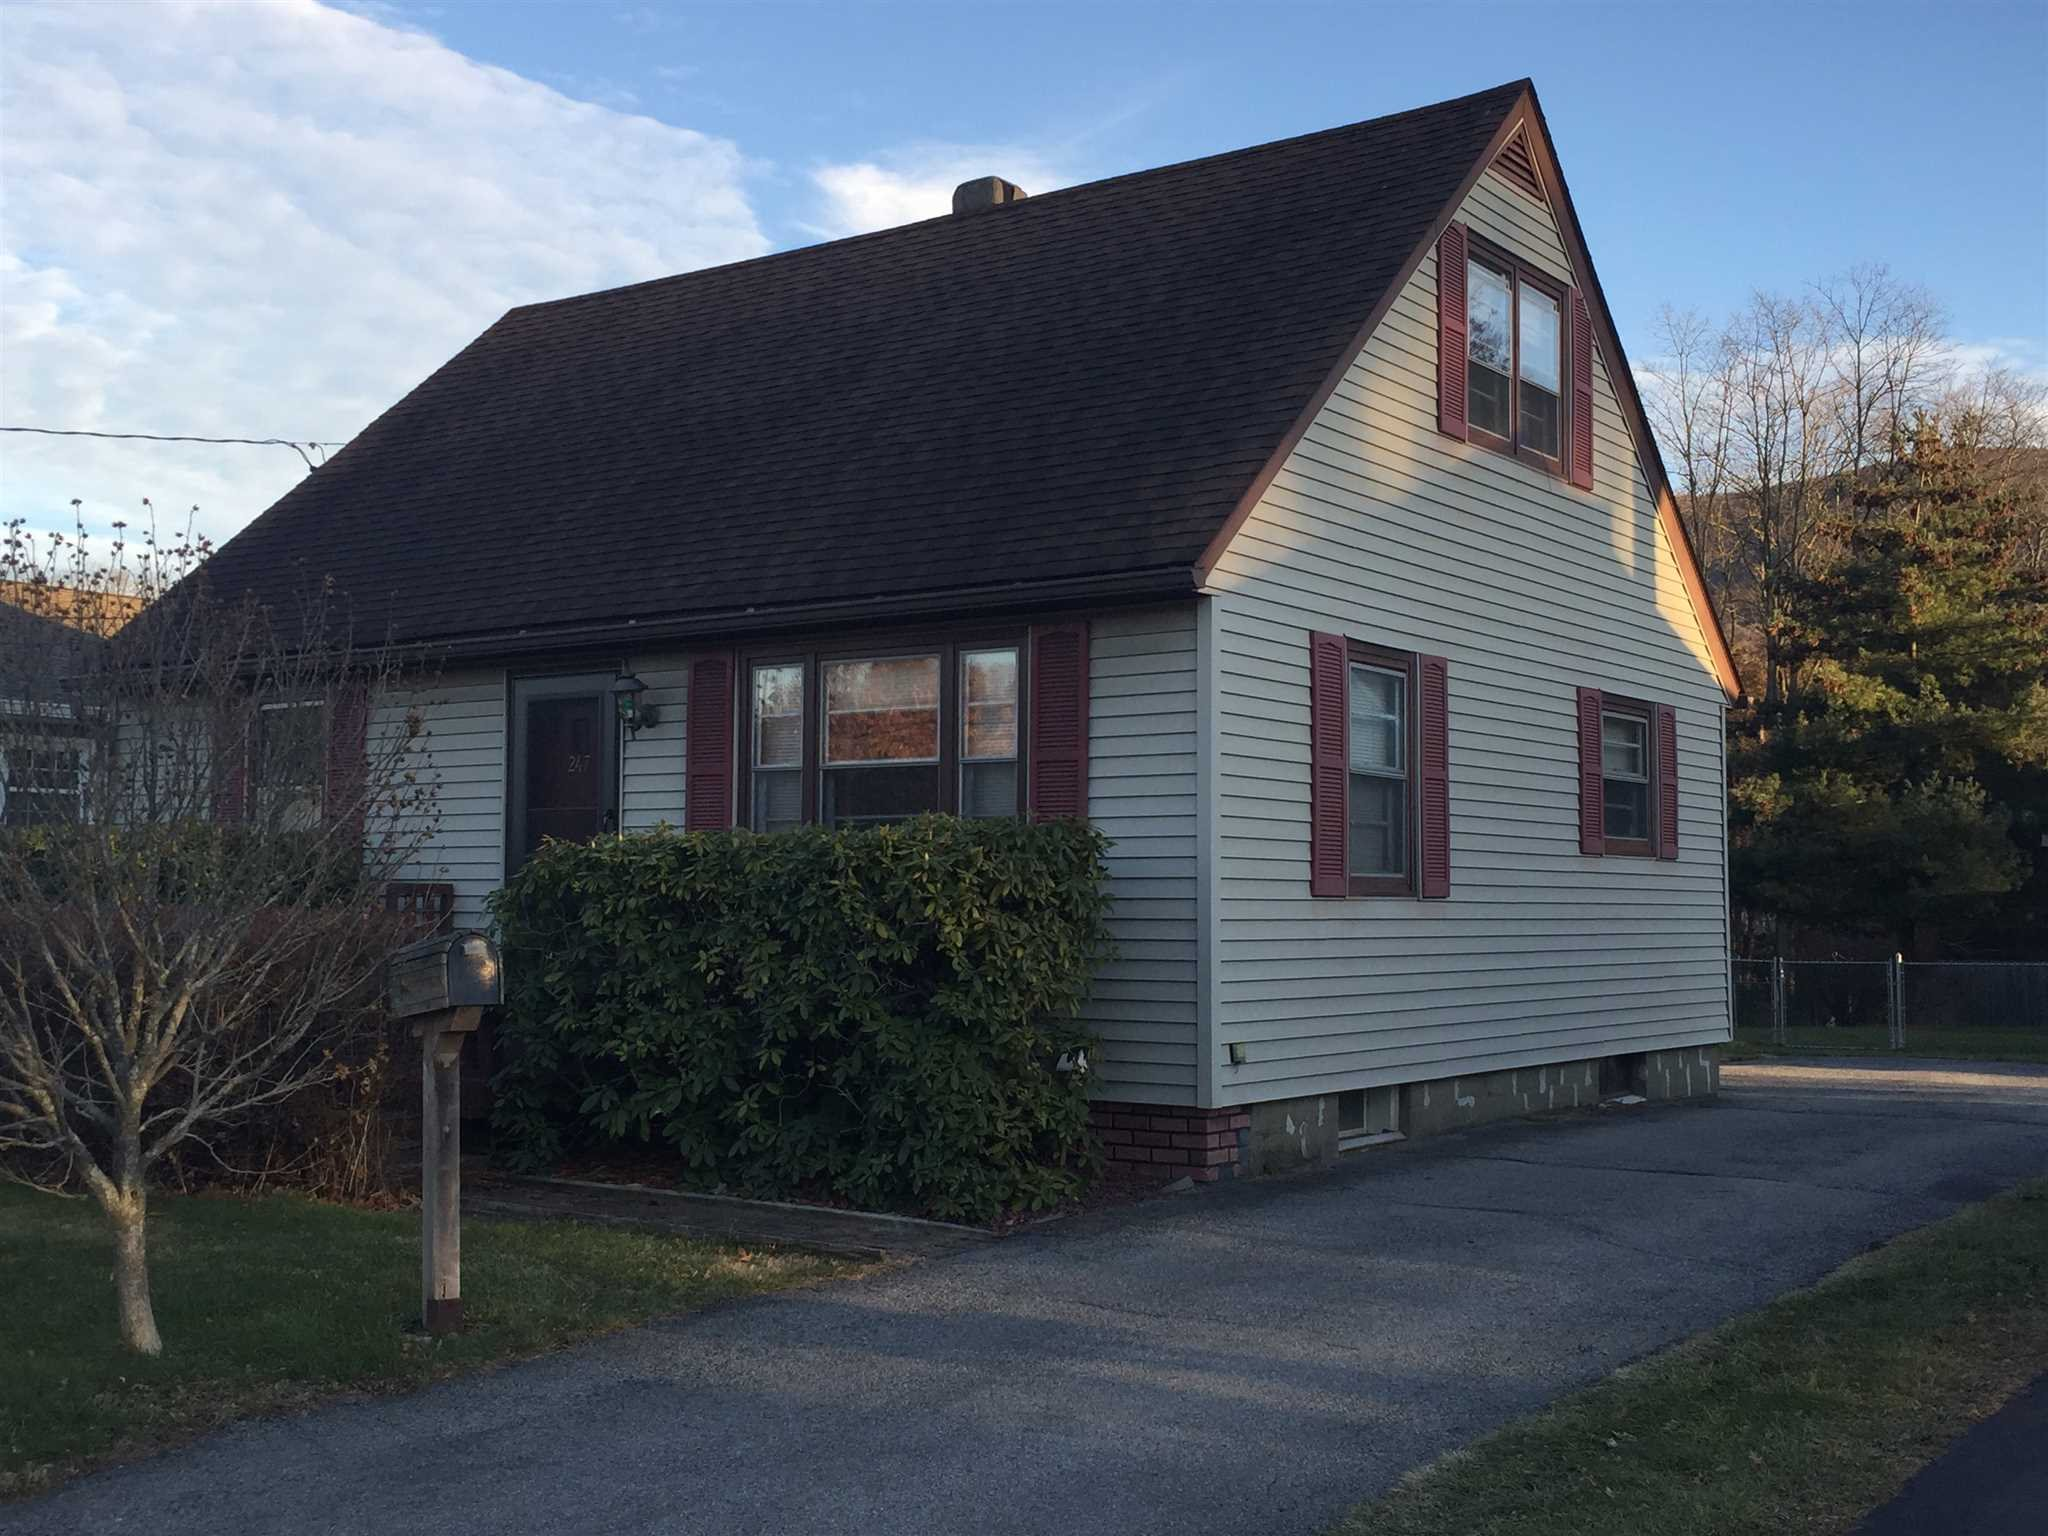 Single Family Home for Sale at 247 LIBERTY Street 247 LIBERTY Street Beacon, New York 12508 United States